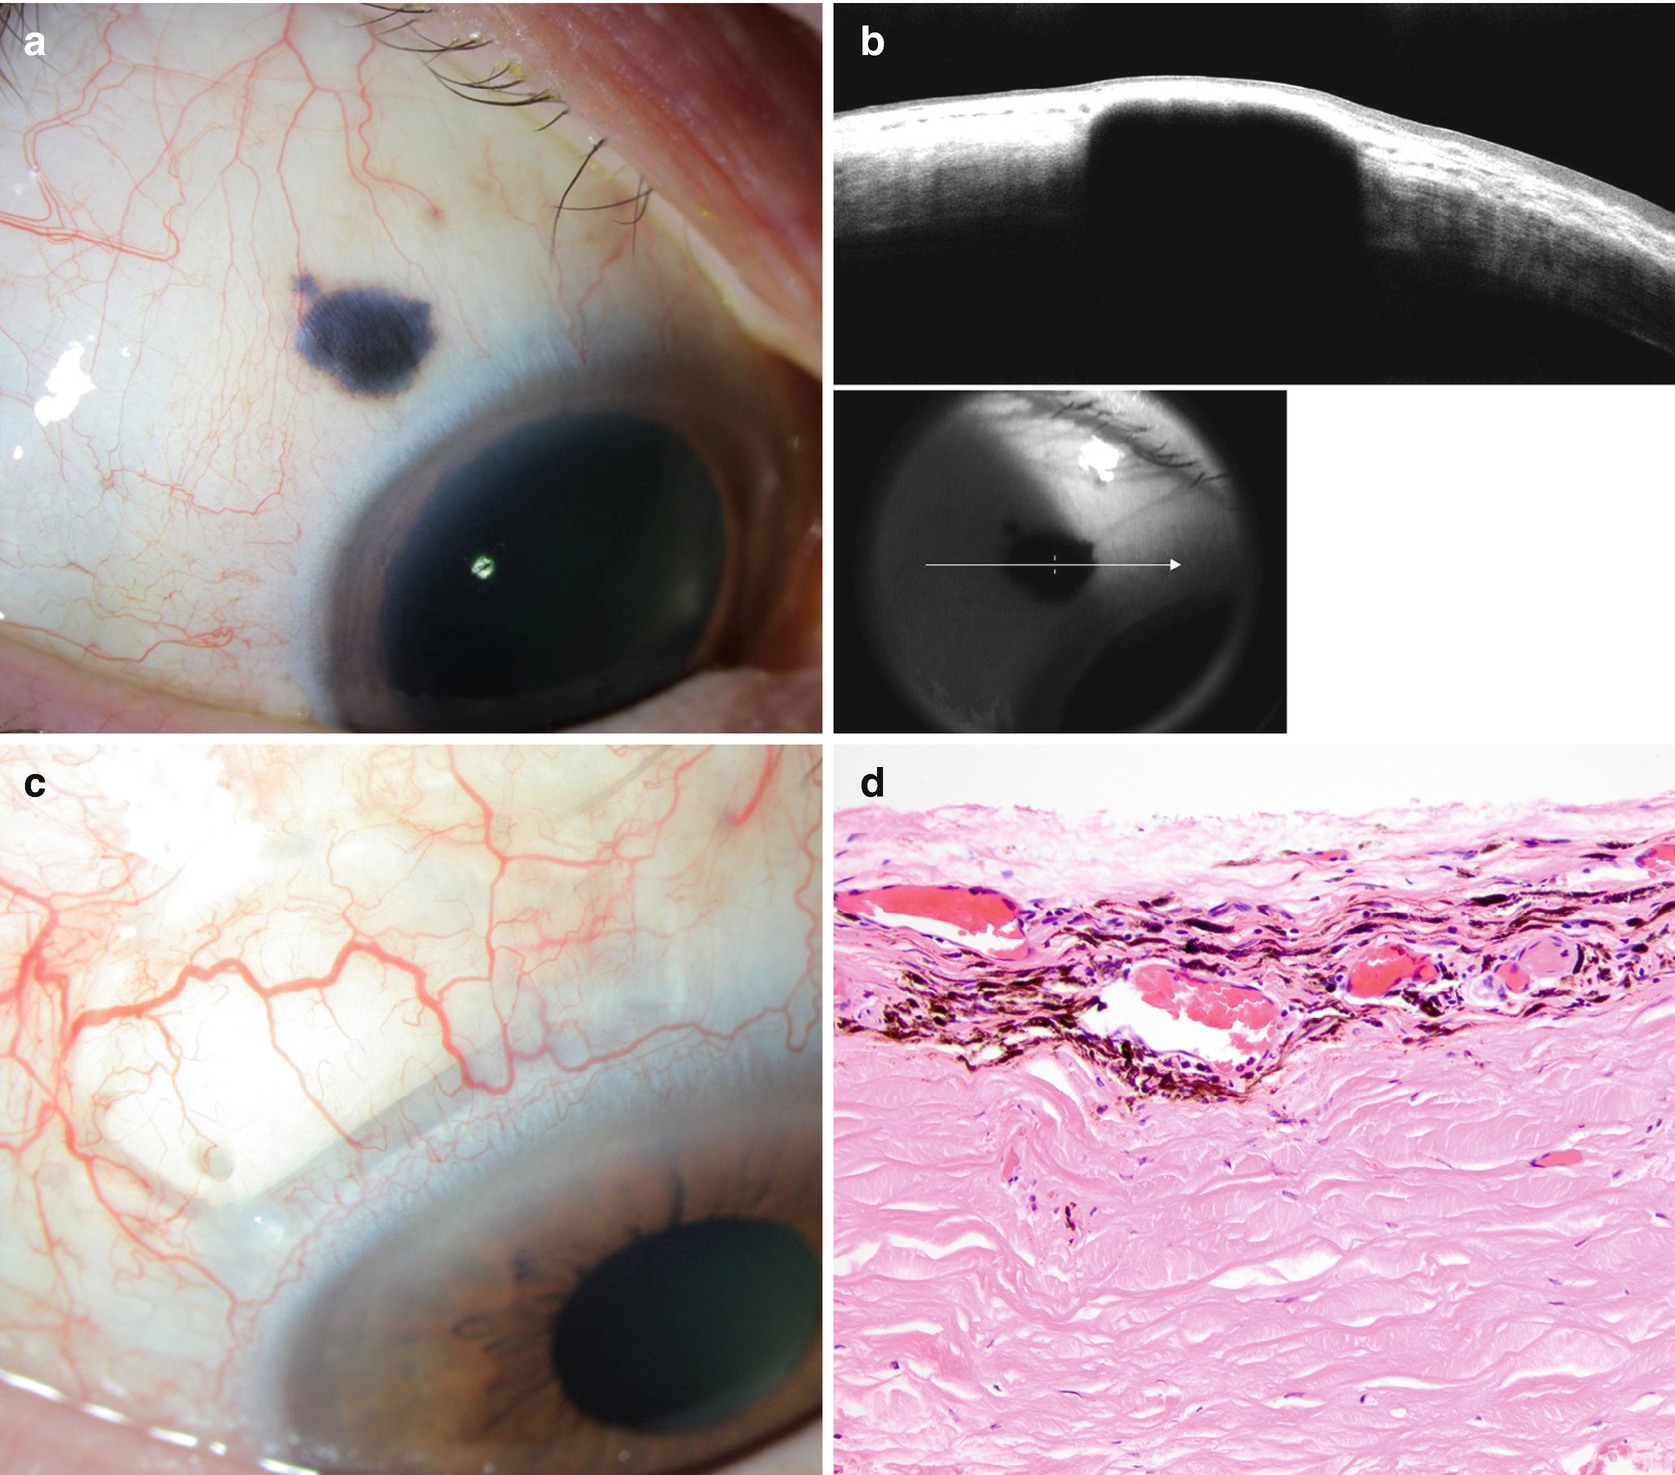 Conjunctival and Corneal Tumors: Benign Epidermal and